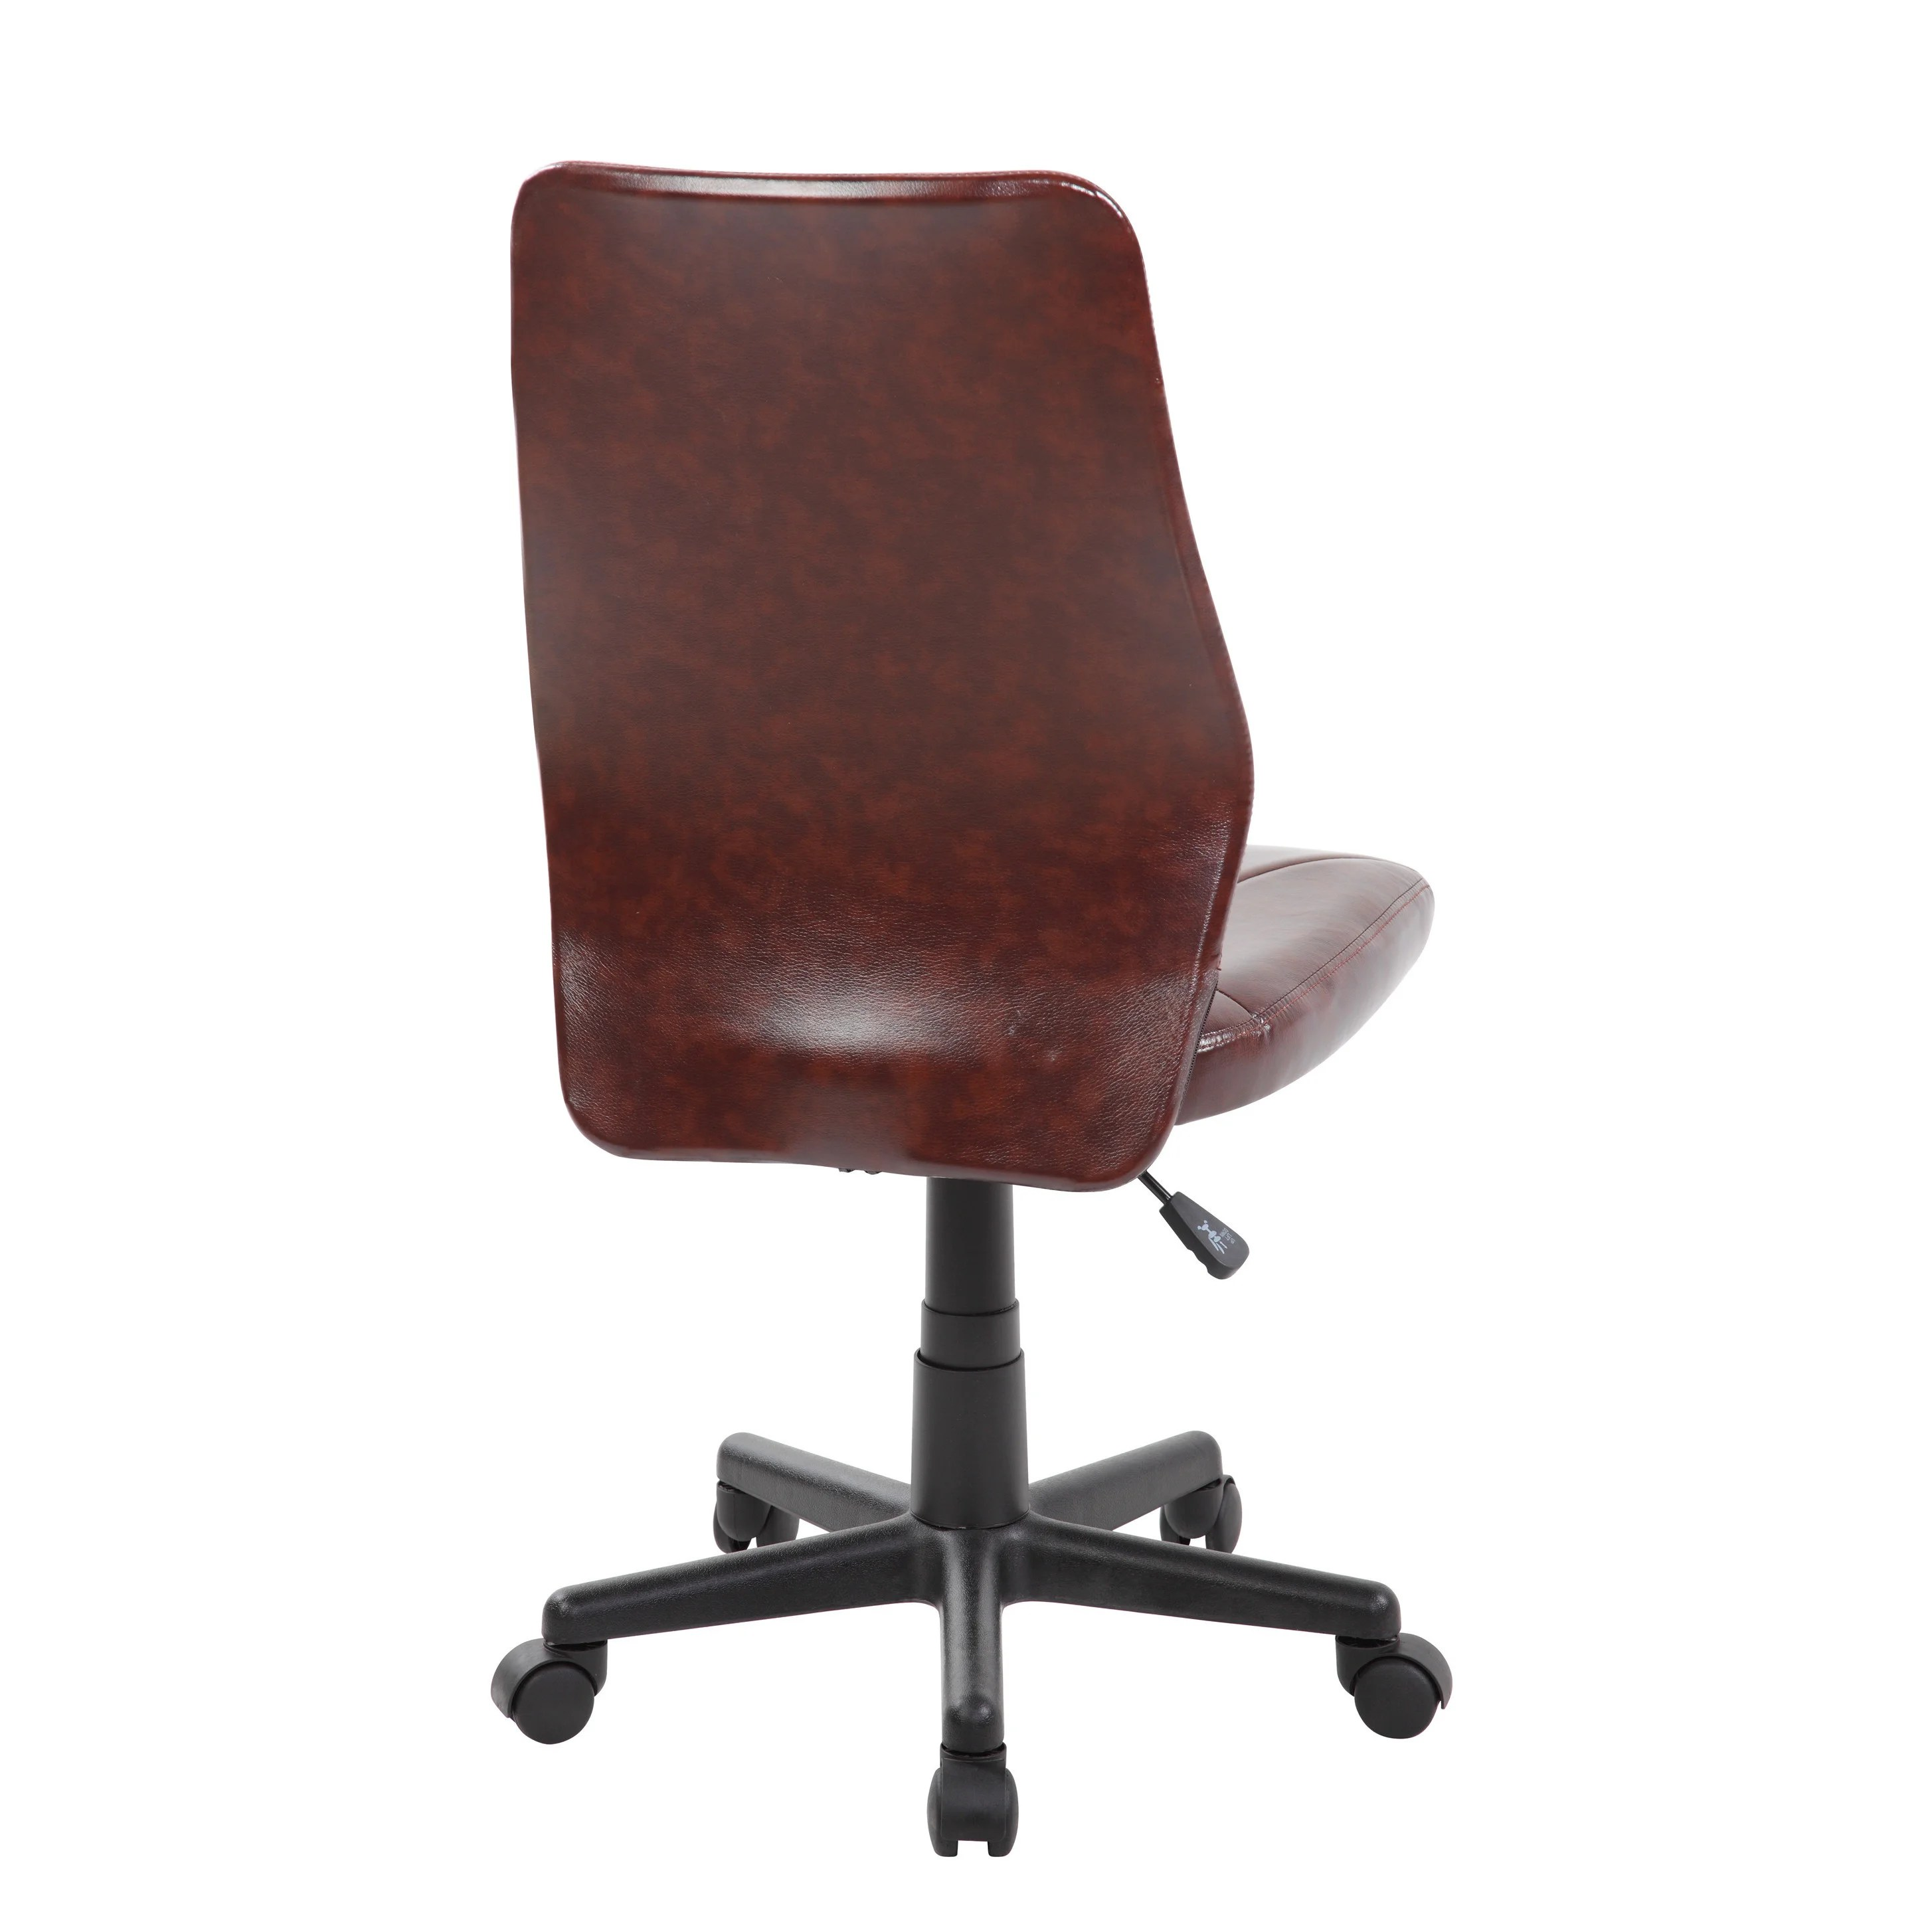 brown office chair without arms best big and tall chairs 2018 shop pu modern ergonomic mid back armless executive computer desk task free shipping today overstock com 13298755